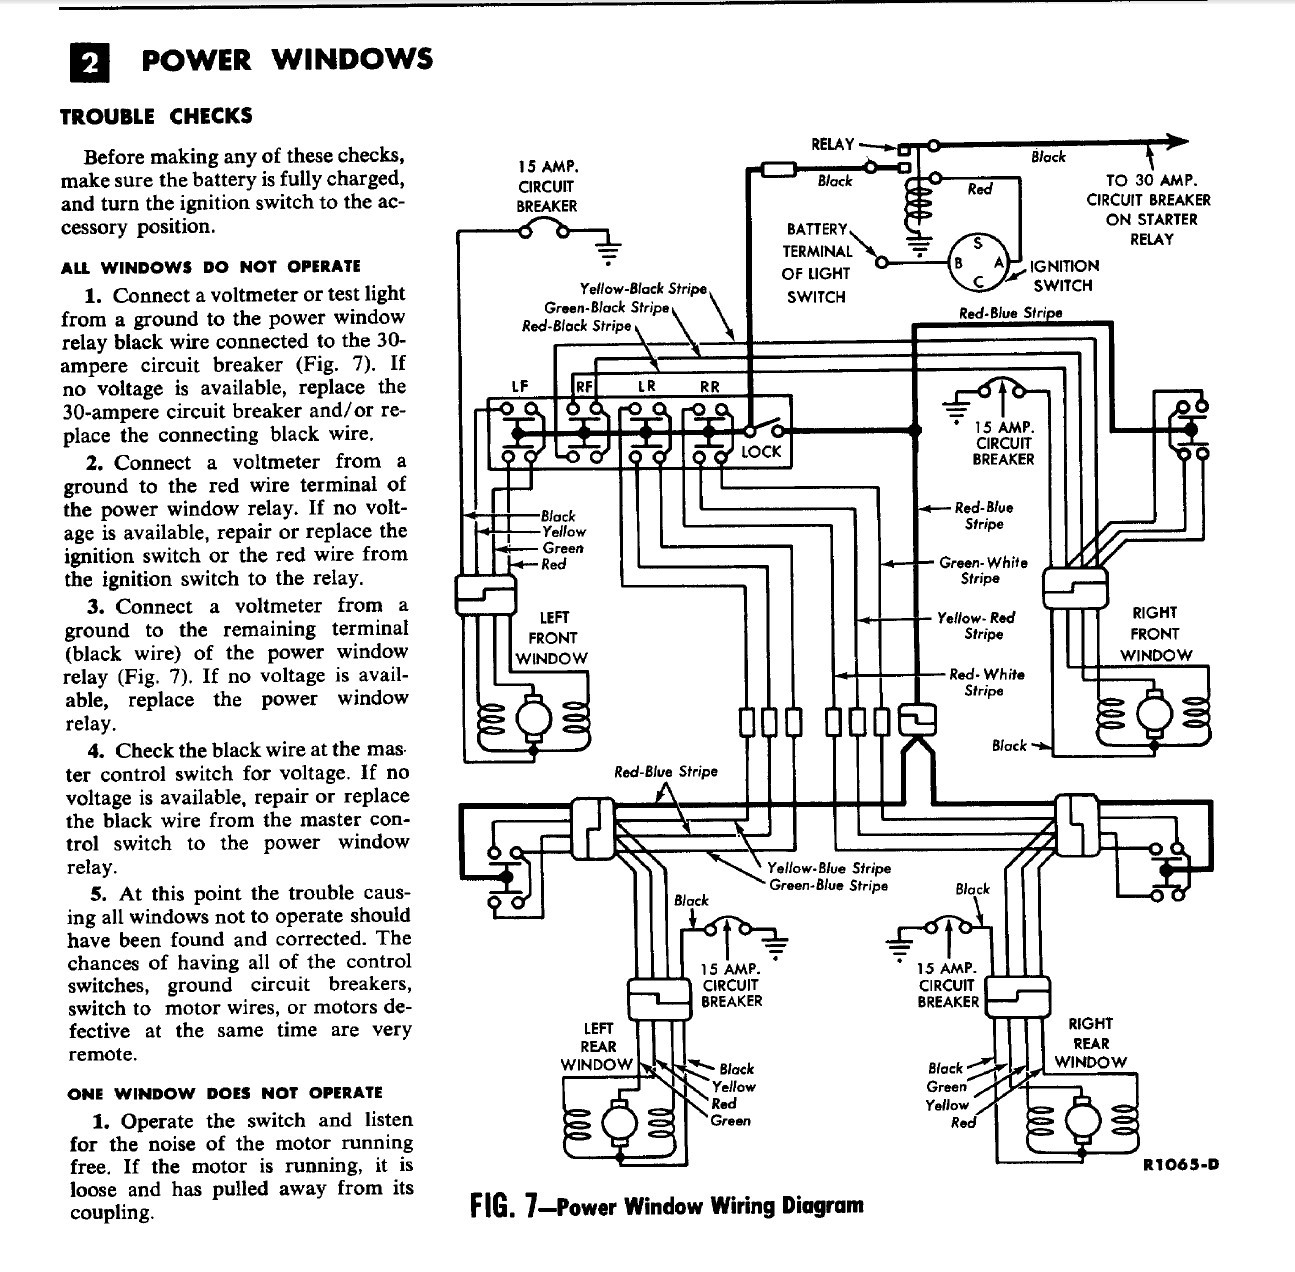 Power Seat Wiring Diagram 88 Thunderbird Diagrams Ford Windows Seats 63 Vintage Club Diy